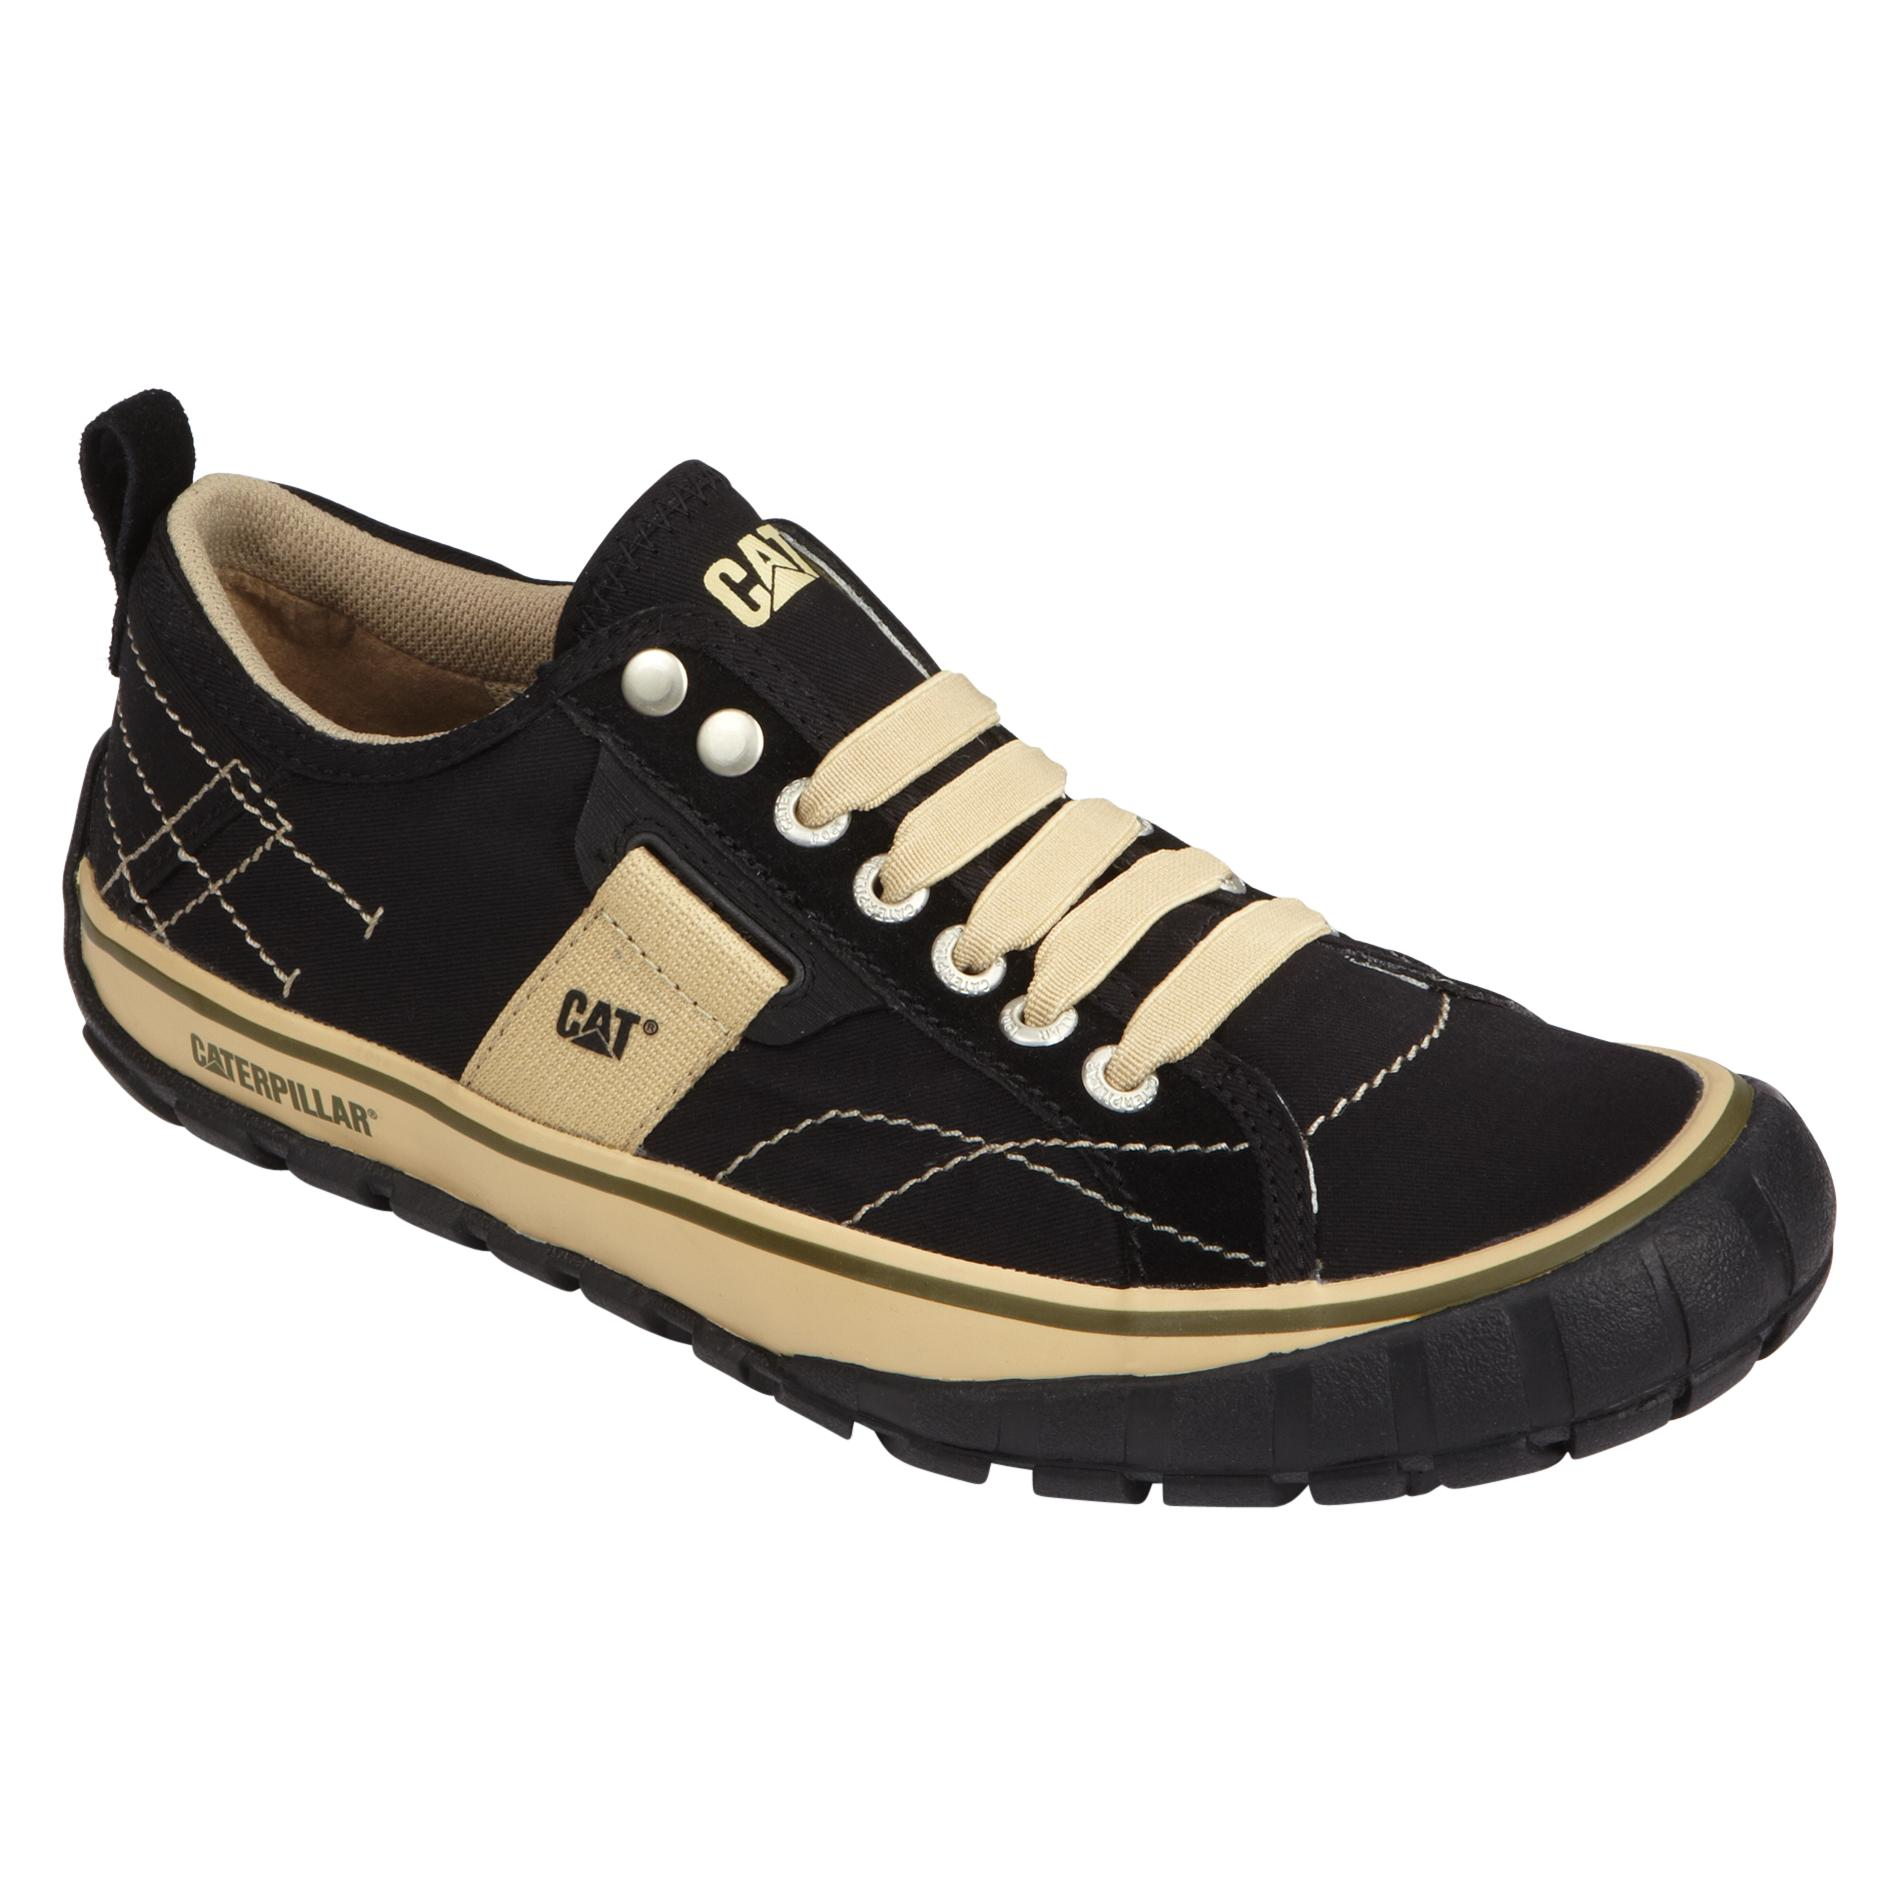 Mens Shoes at mygofer.com